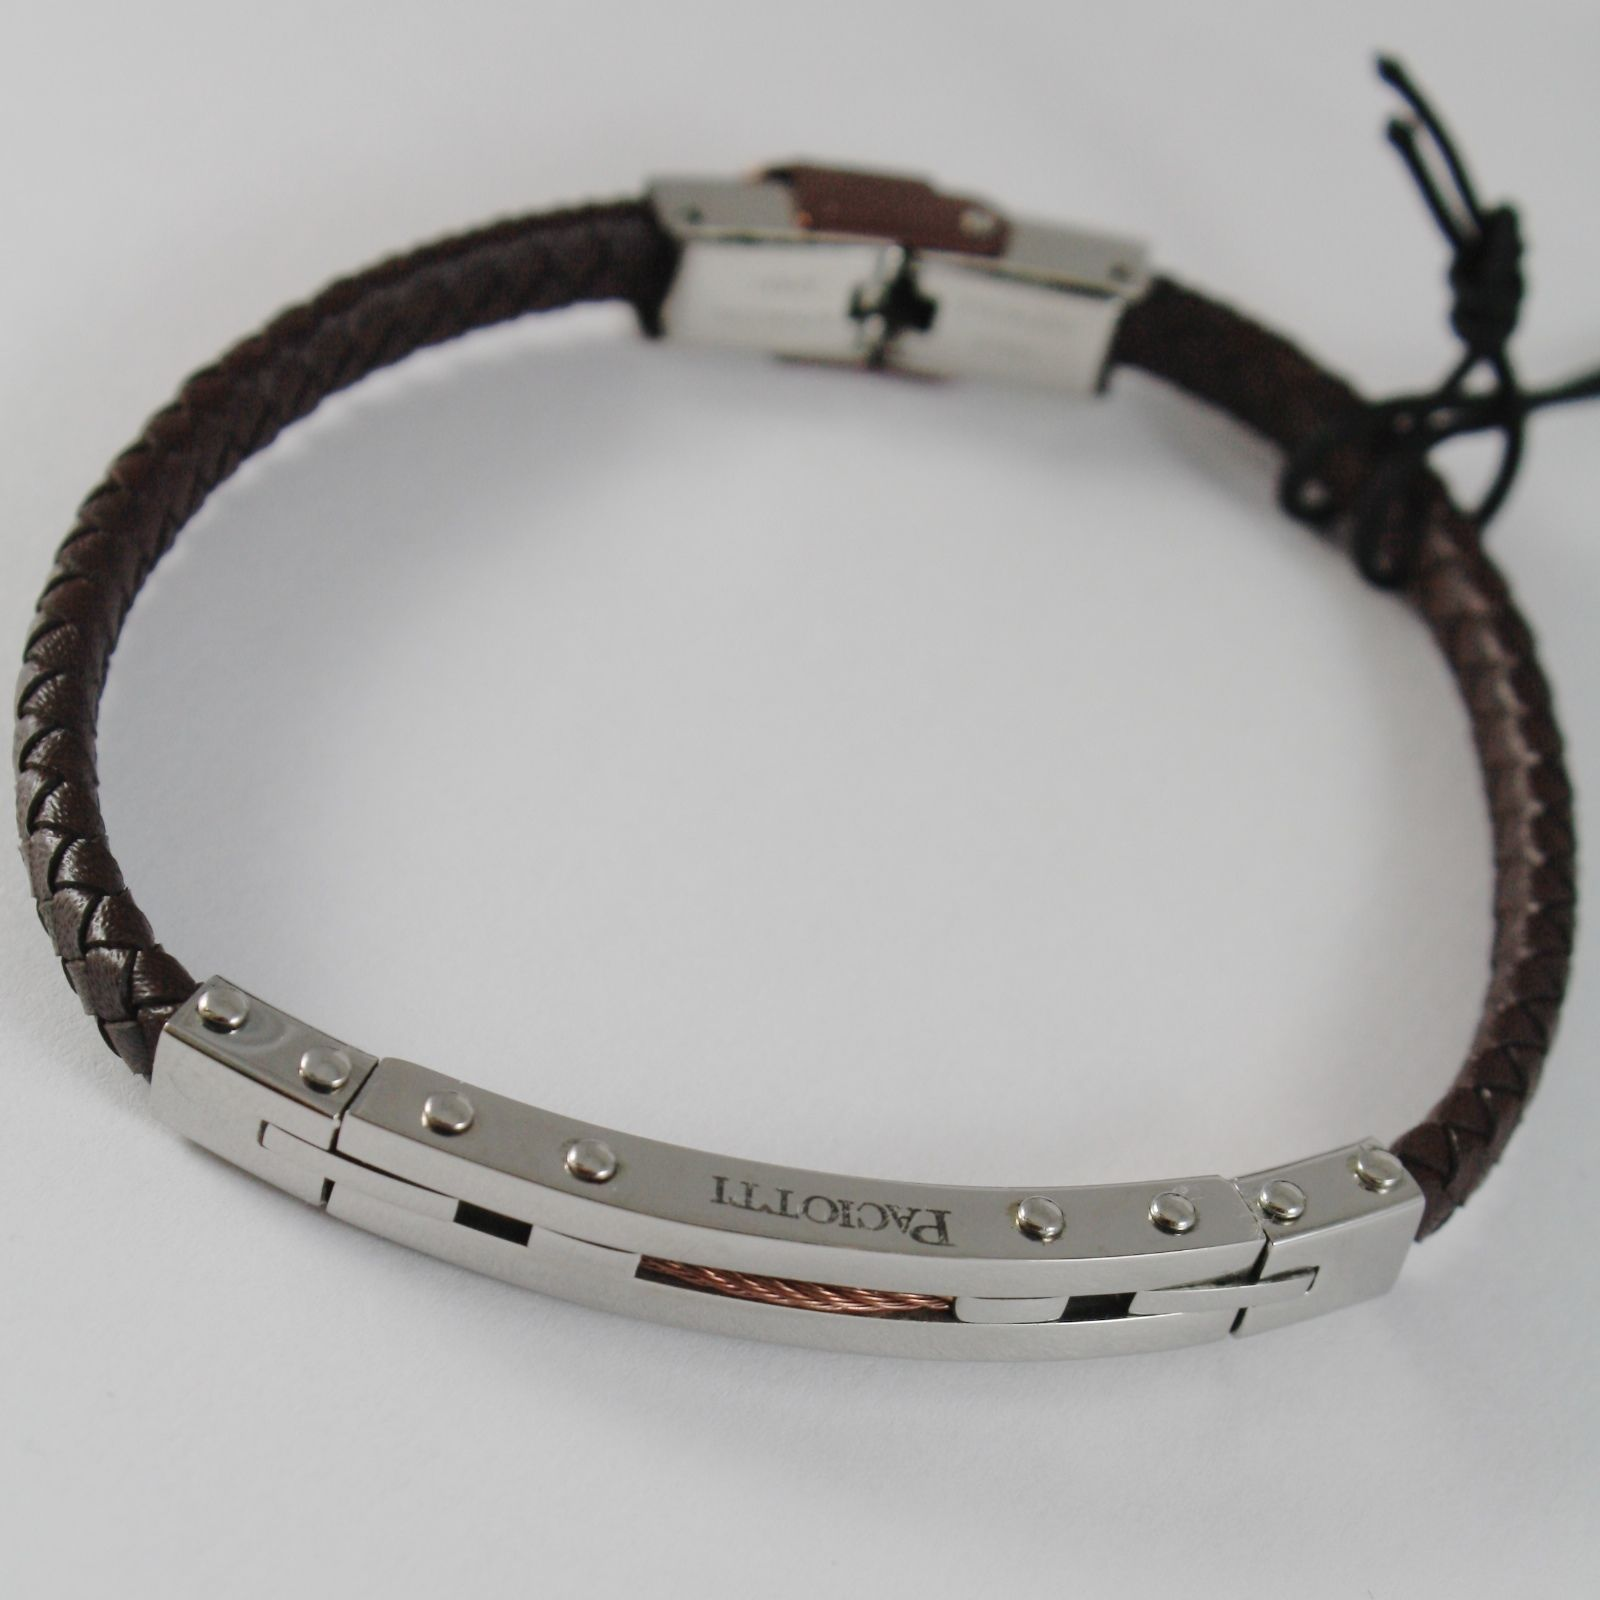 MEN'S BRACELET STEEL AND LEATHER SEMI-RIGID CESARE PACIOTTI 4US 4UBR1530